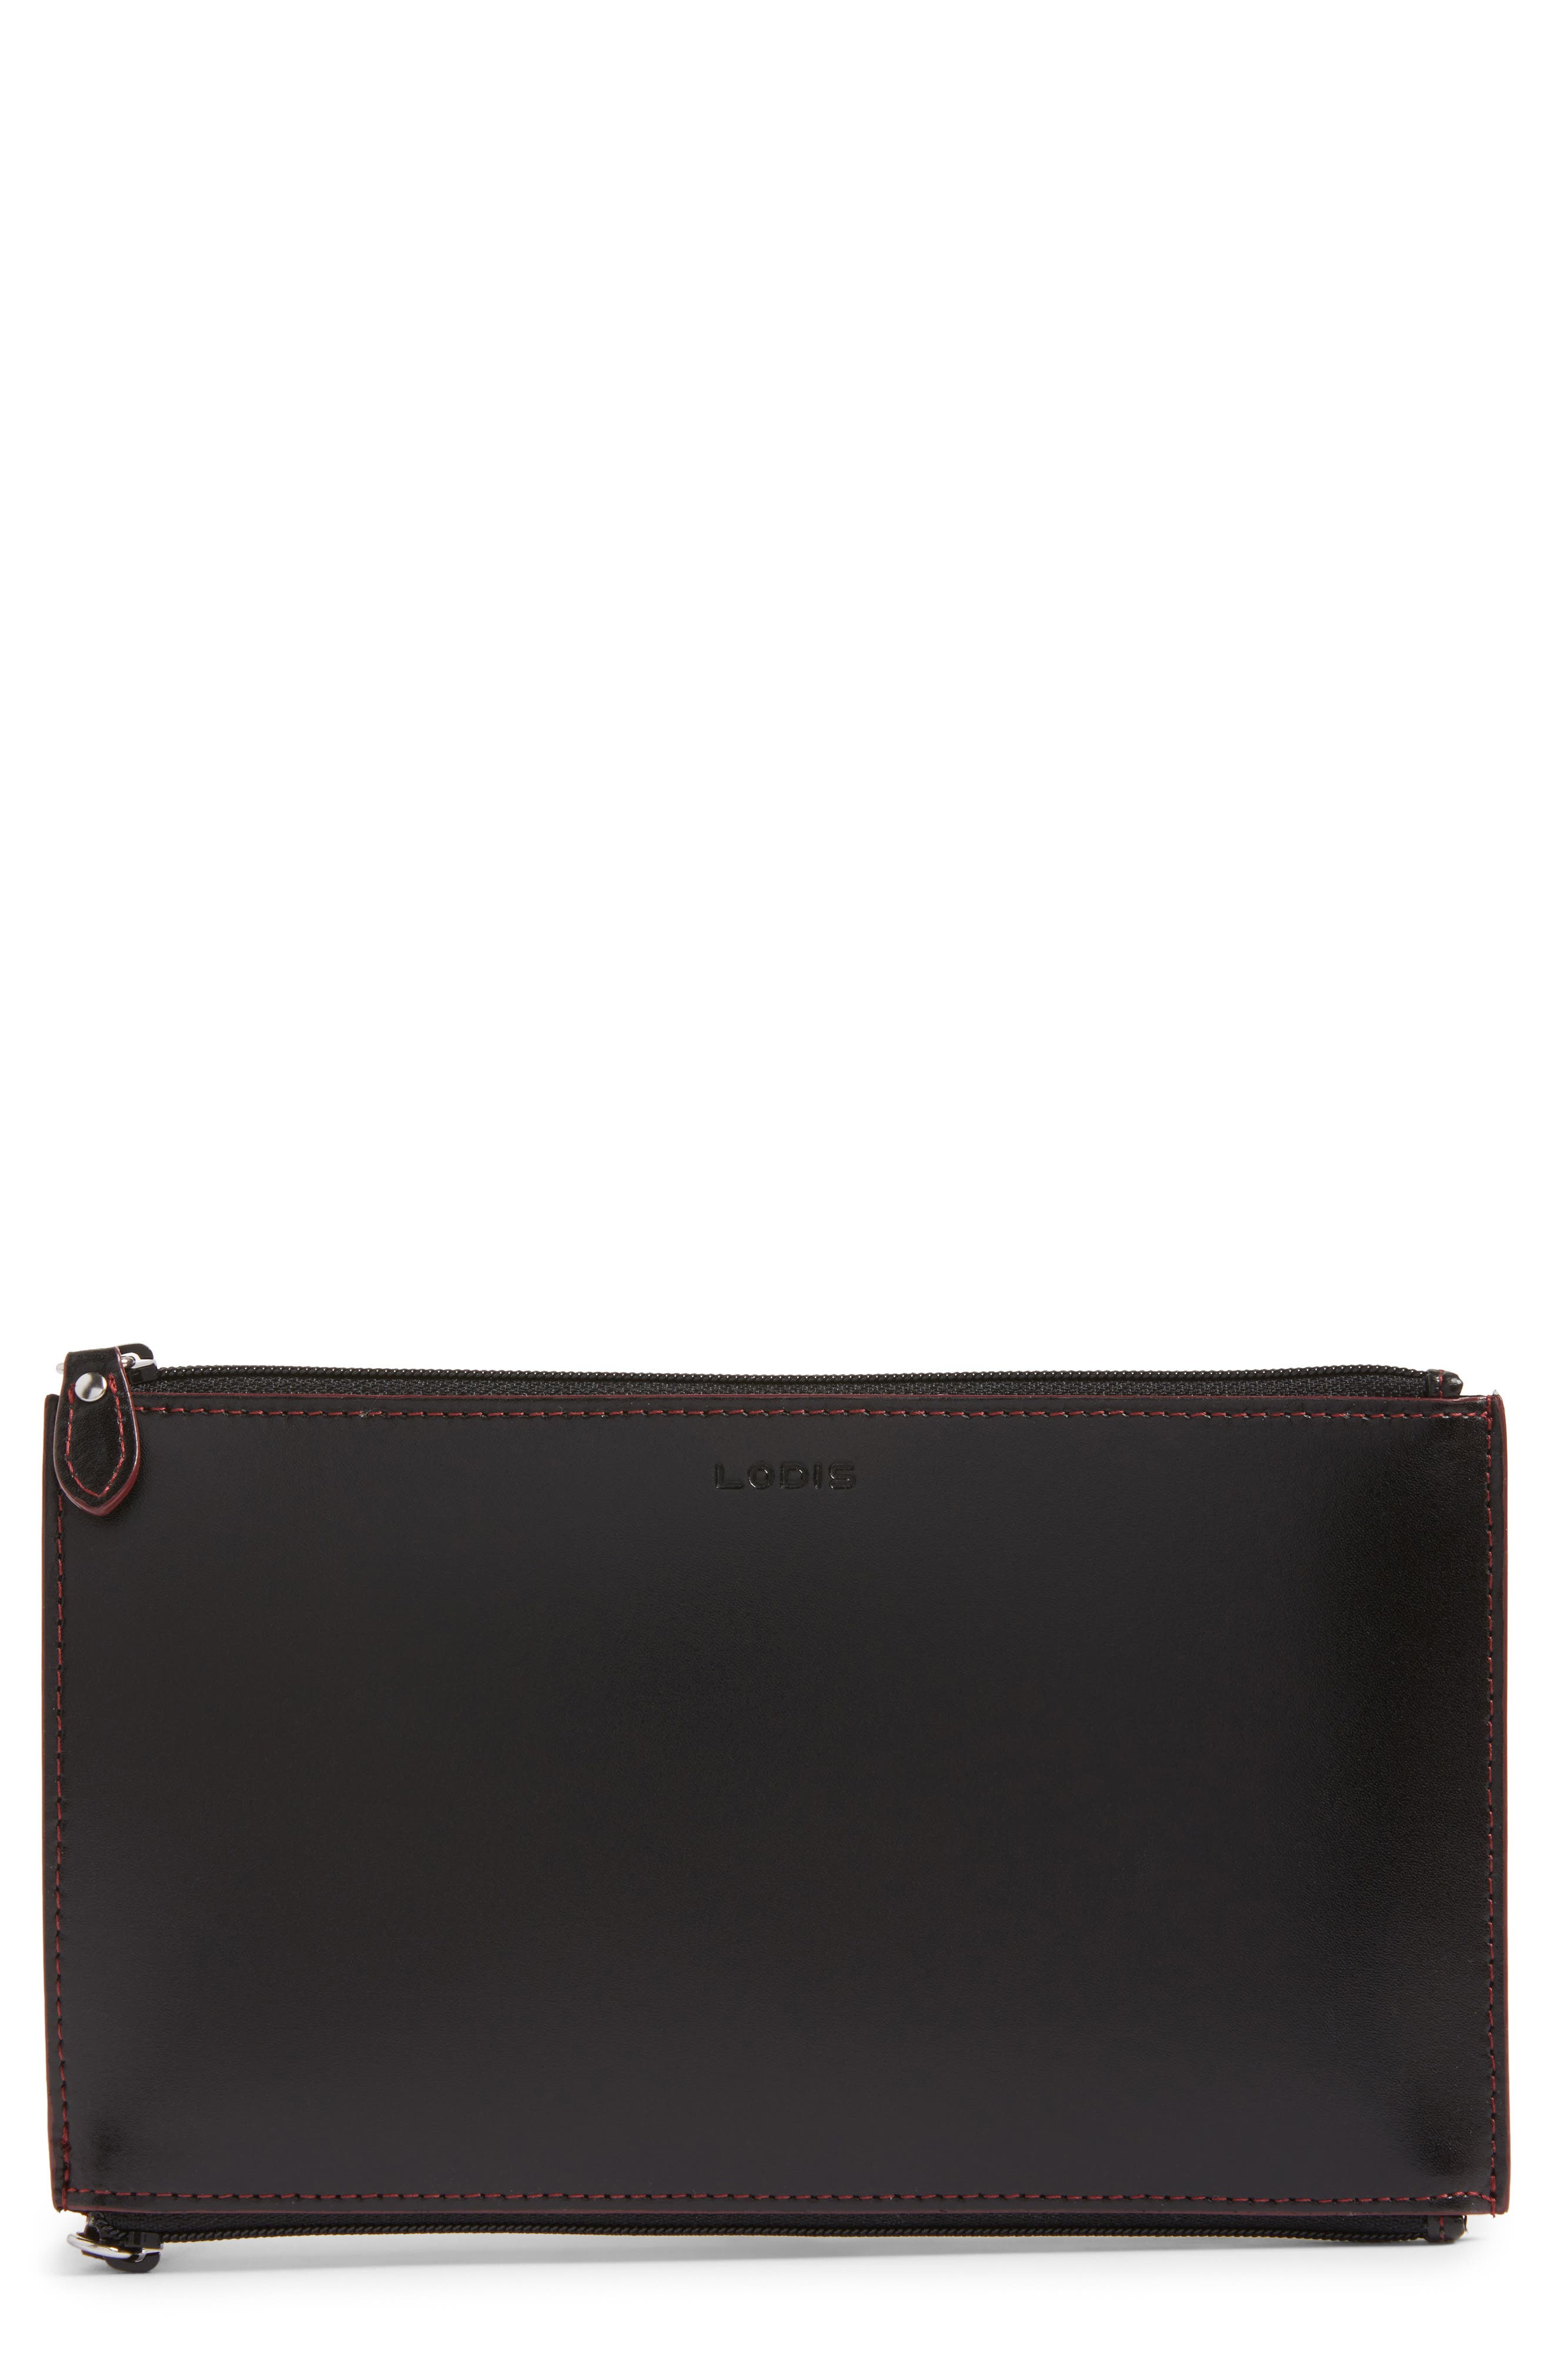 Lodis Audrey - Lani RFID Double-Sided Leather Zip Pouch